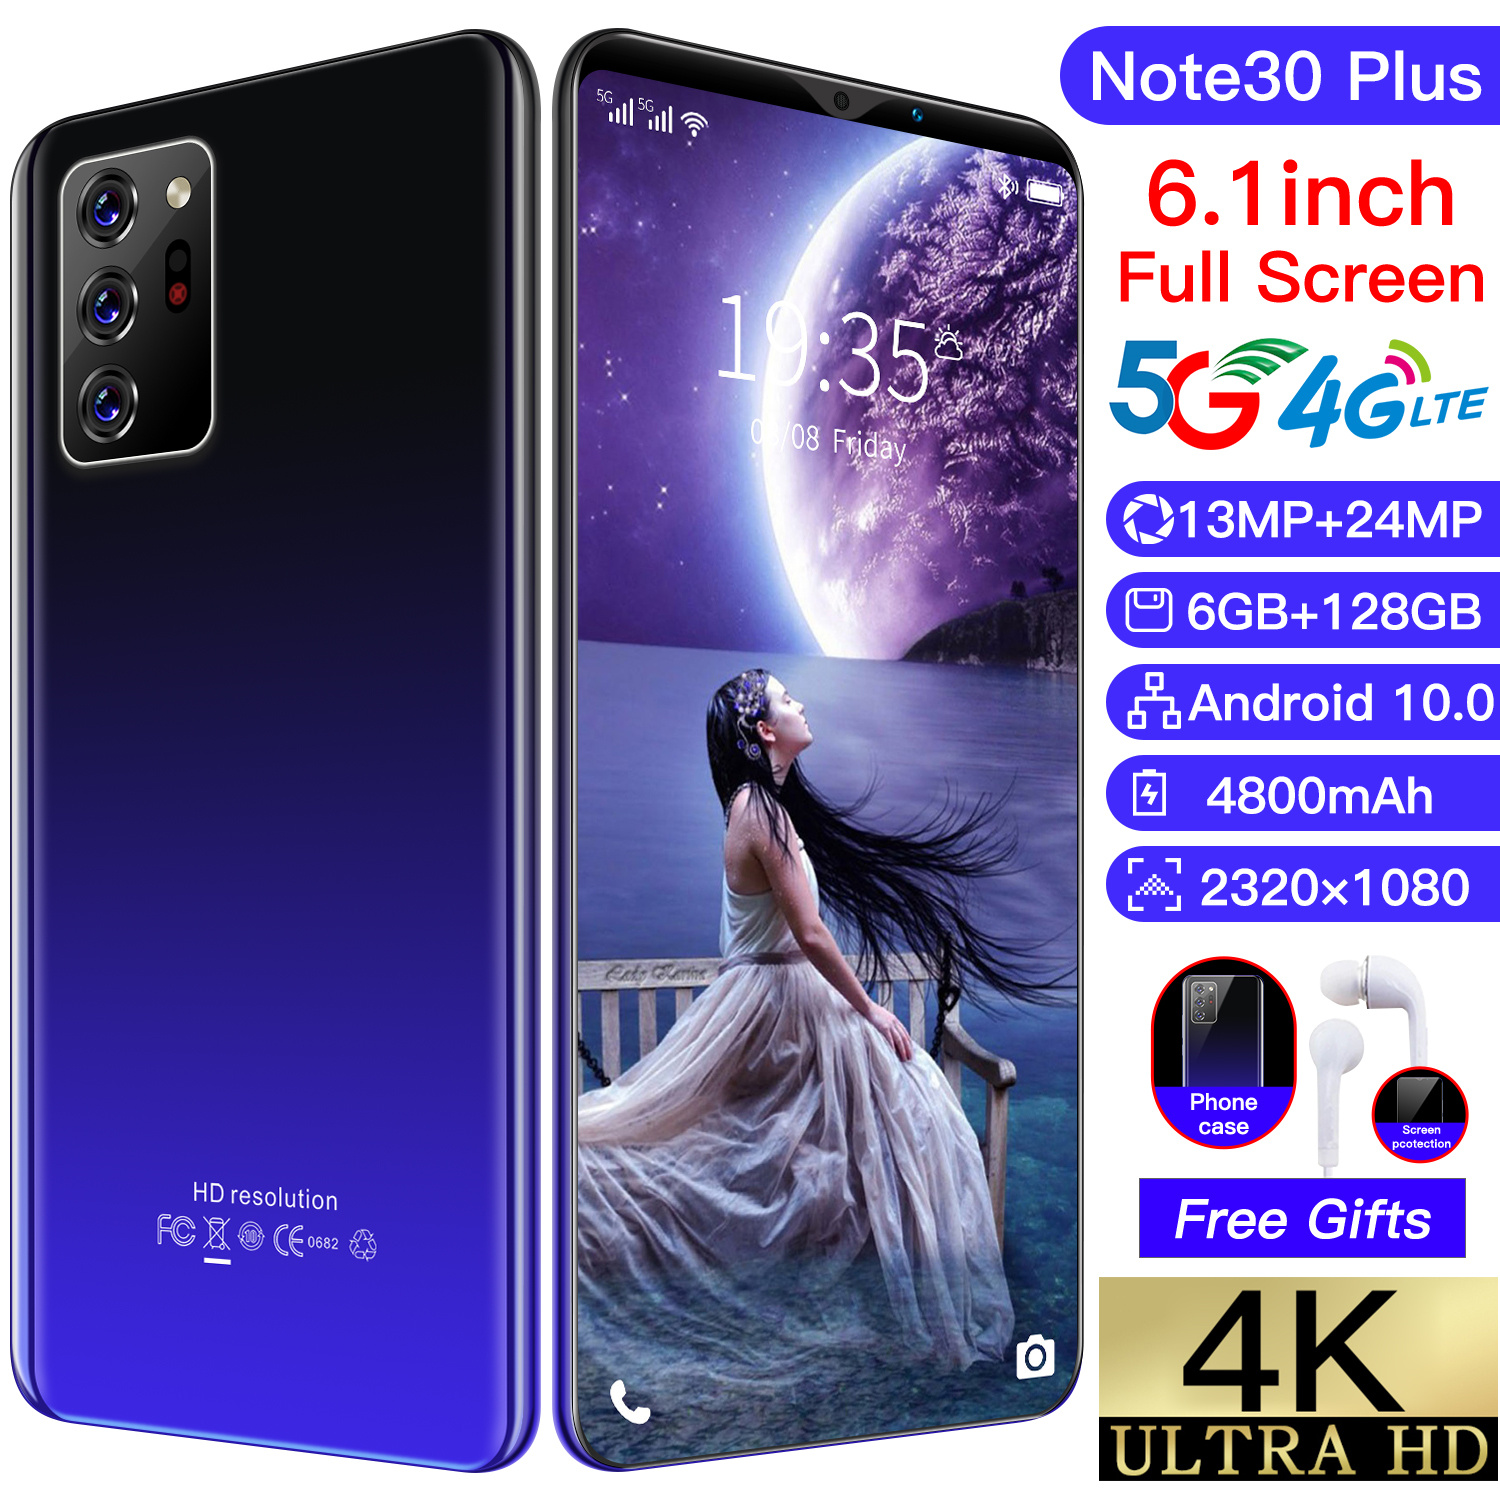 2021 Global Version Note30 Plus 6.1 Inch Smartphone 10 Core 4800mAh 6+128GB 13+24MP Face Unlock Dual SIM 4G LTE 5G Mobilephone